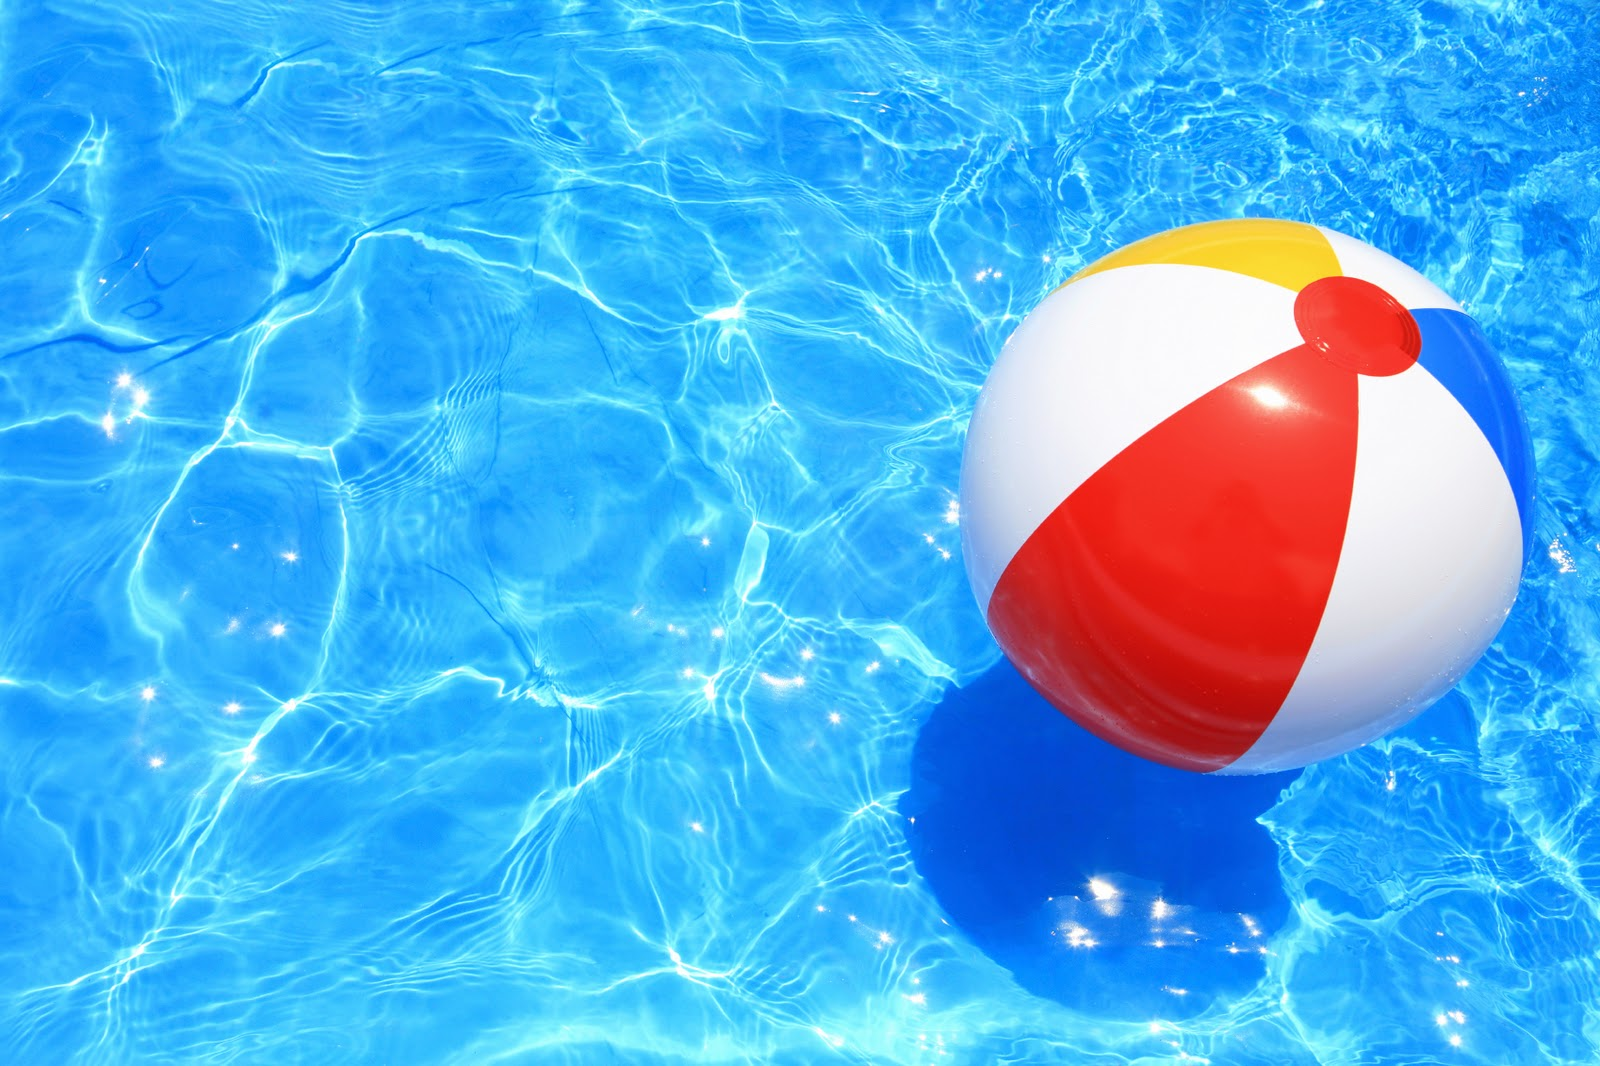 Beach Ball wallpaper Beach Ball hd wallpaper background desktop 1600x1066